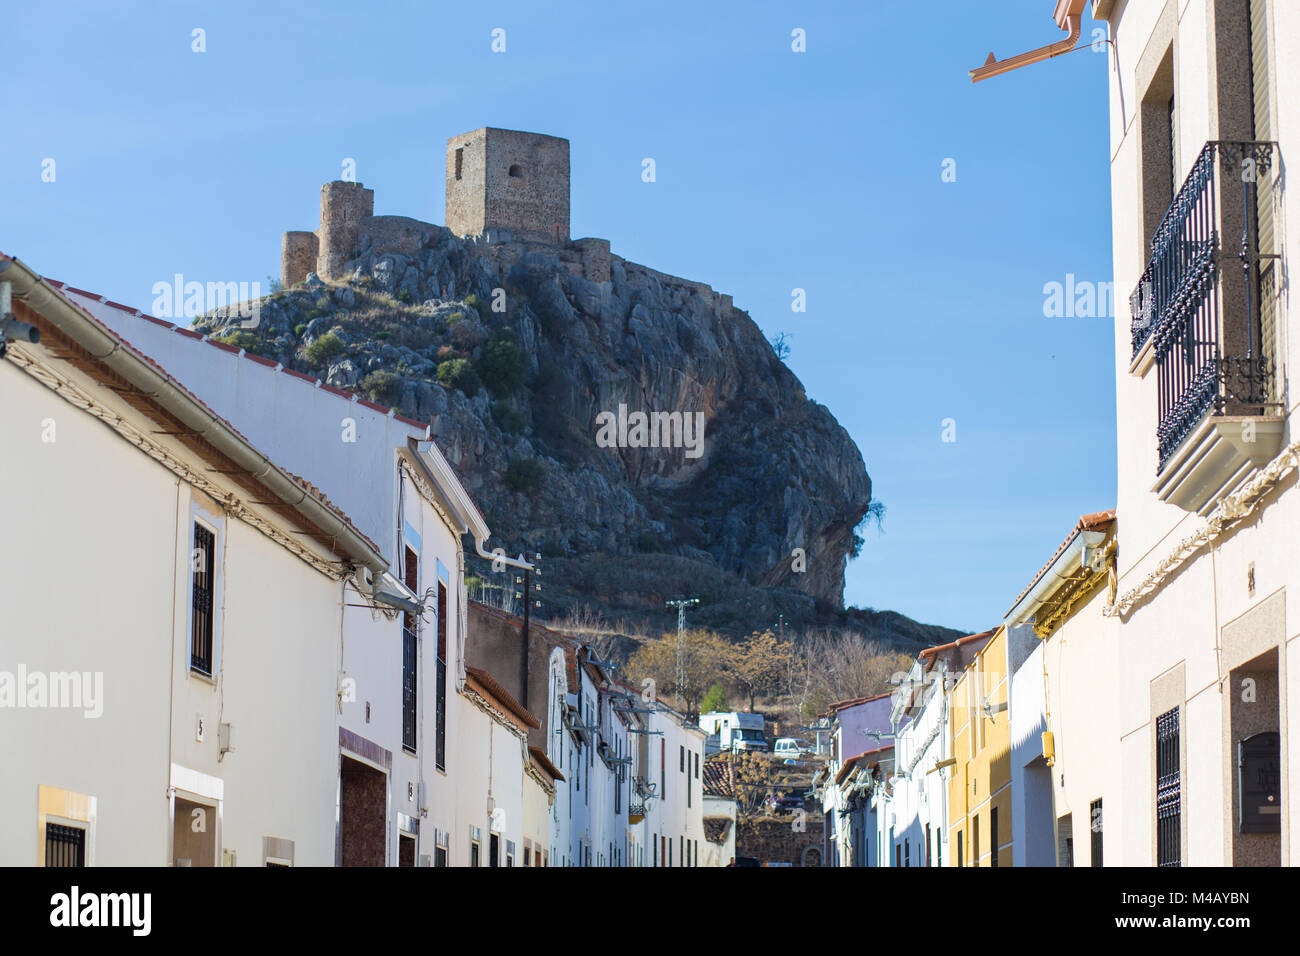 Outcrop rocky hill with Castle of Belmez, Cordoba, Spain. View from town streets - Stock Image